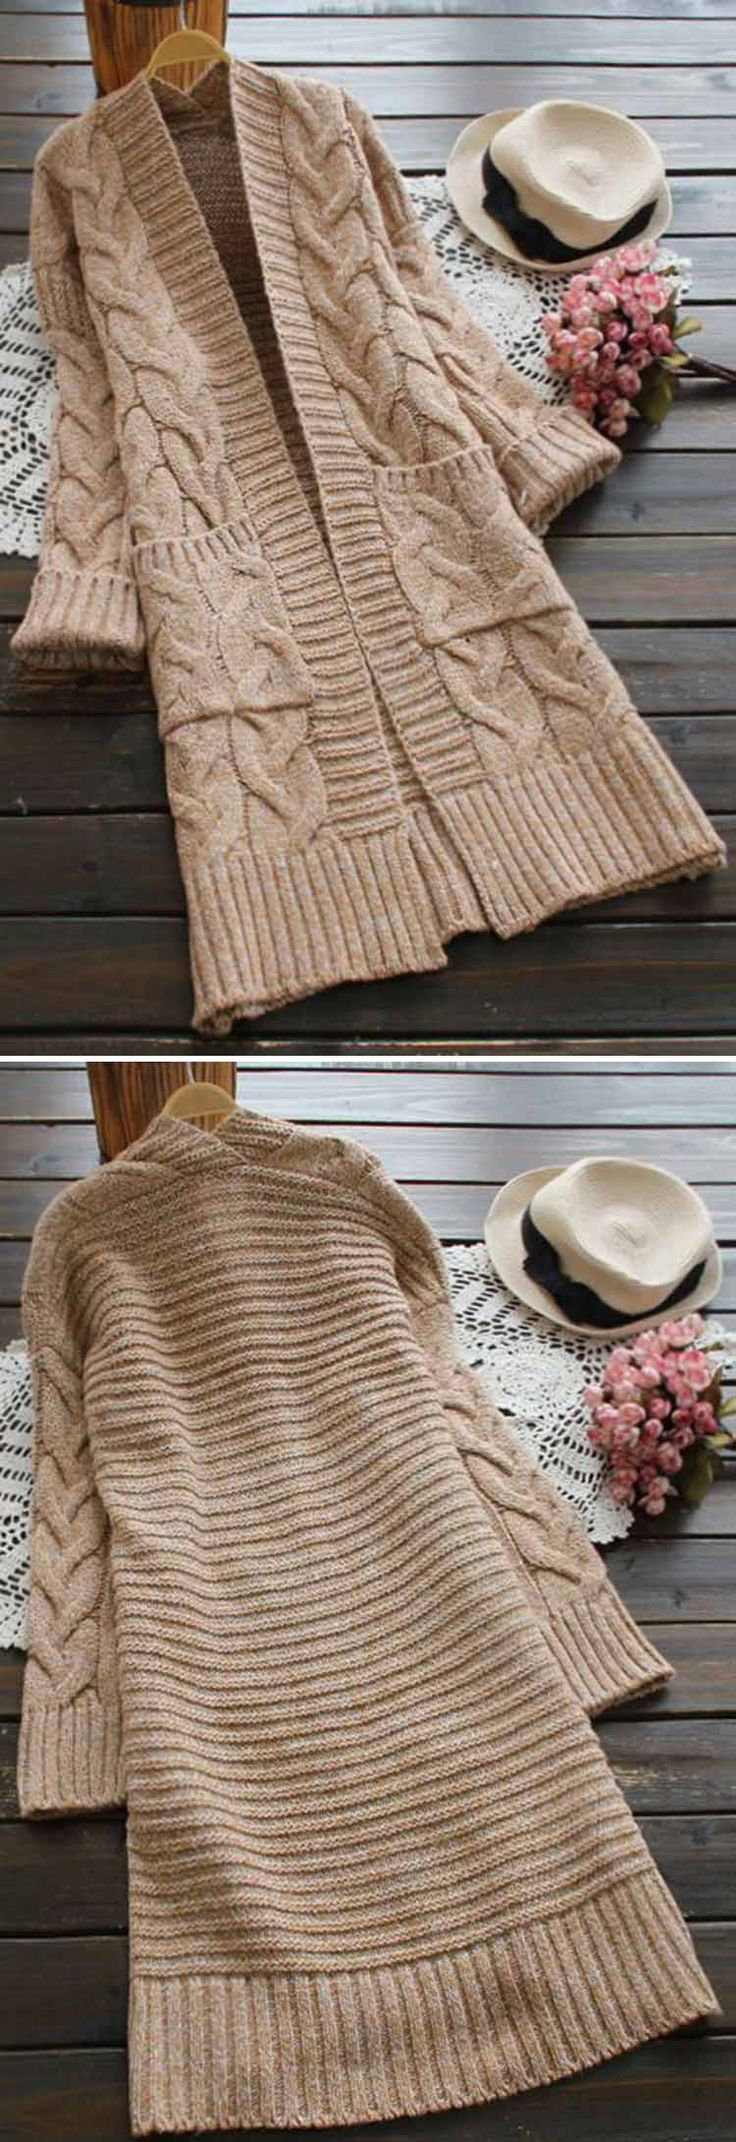 15% Off for pre-order! Only $39.99! Free shipping&easy return! This twist knitting sweater cardigan gonna keep you cozy&warm all day! Make it yours at Cupshe.com